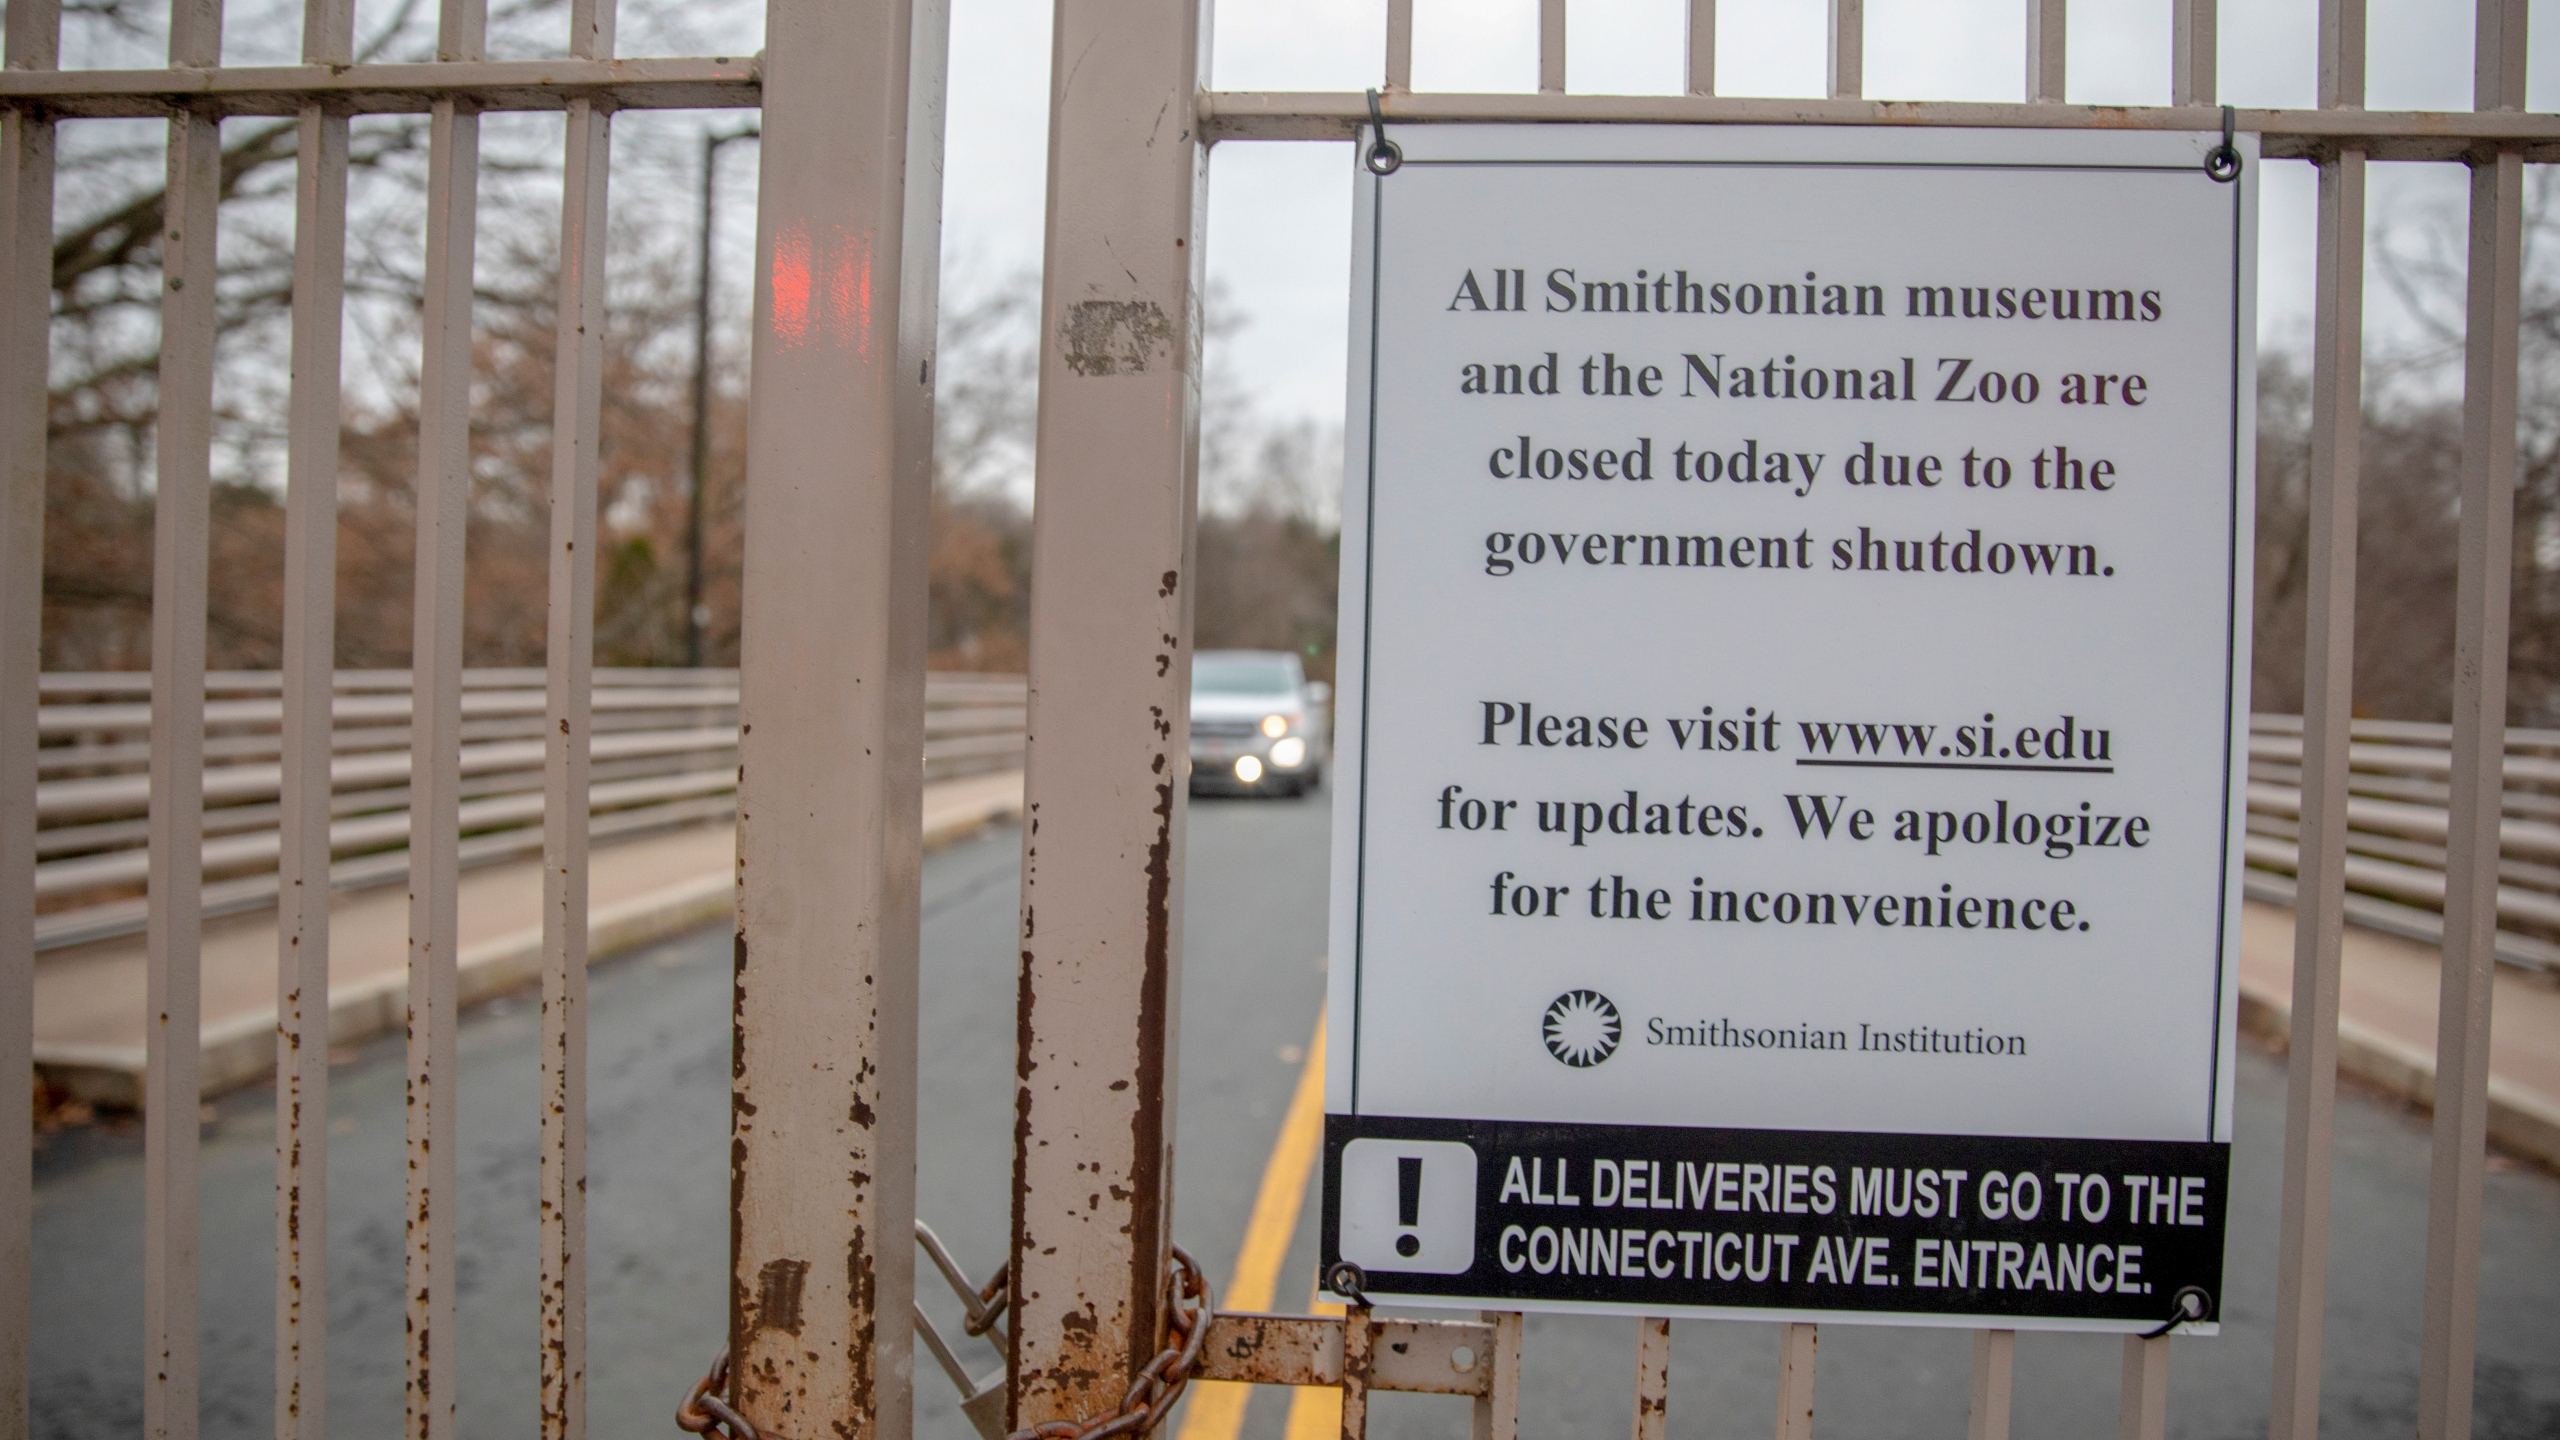 Smithsonian National Zoo is closed to the public on Jan. 02, 2019 in Washington, D.C. amid a government shutdown. (Credit: Tasos Katopodis/Getty Images)